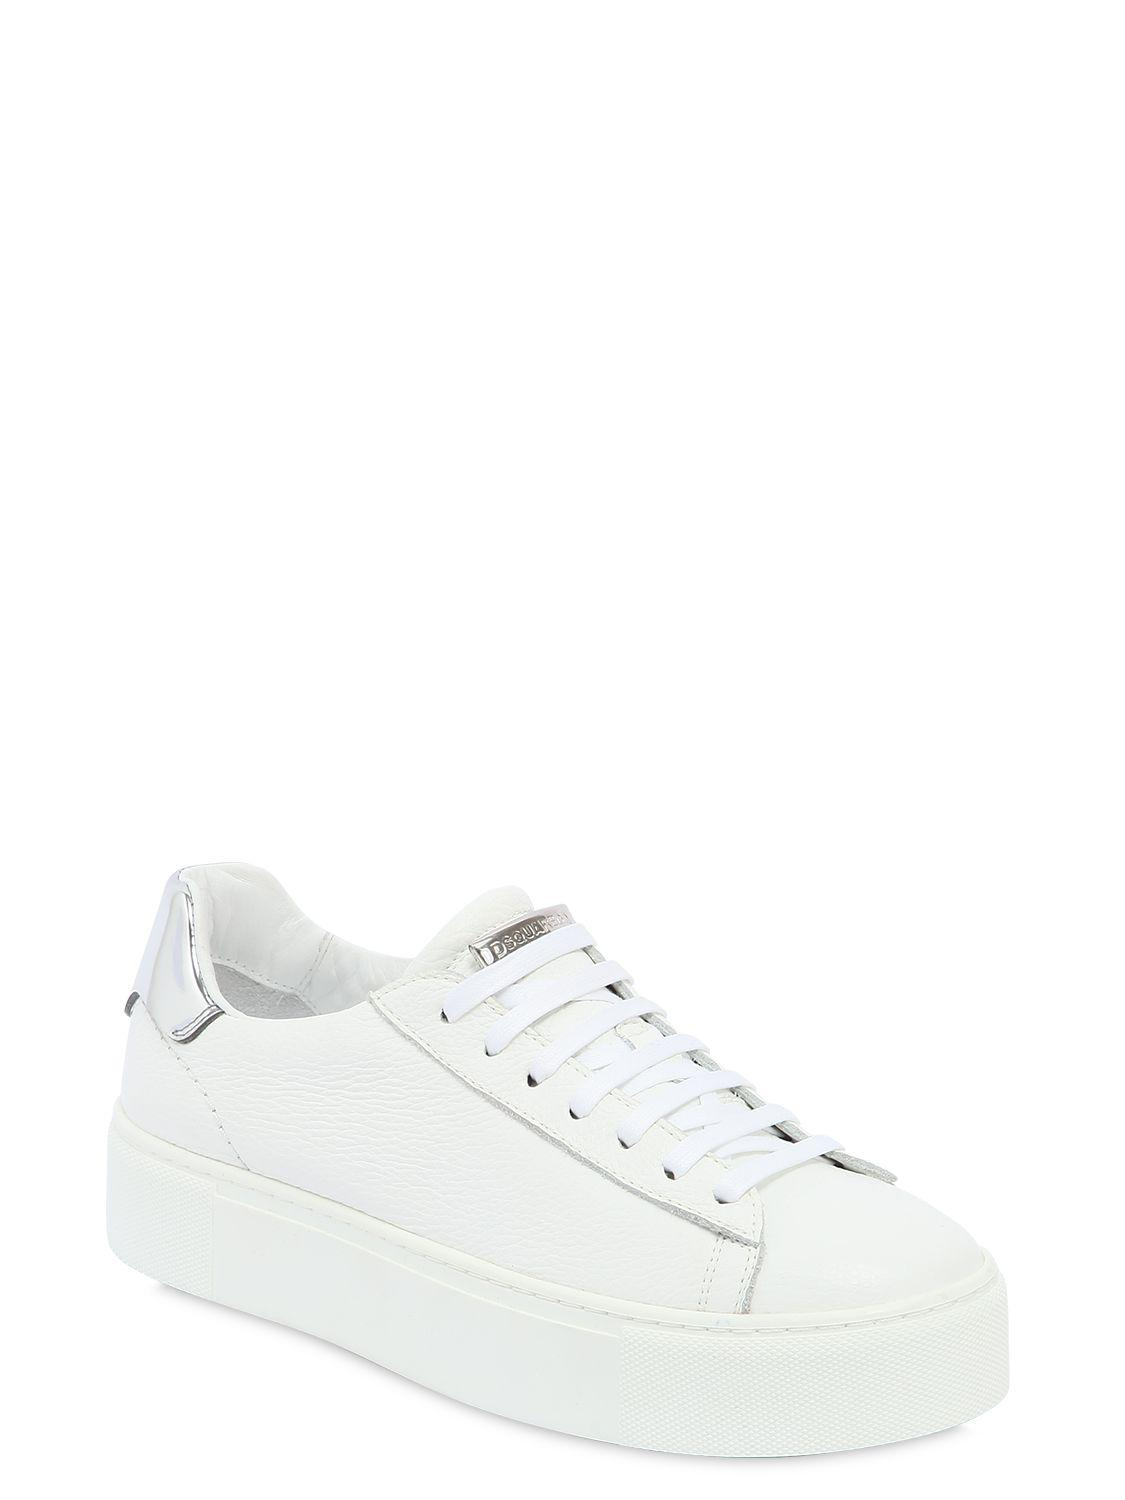 Dsquared2 40MM LEATHER PLATFORM SNEAKERS Buy Cheap Authentic 0Ijgkei